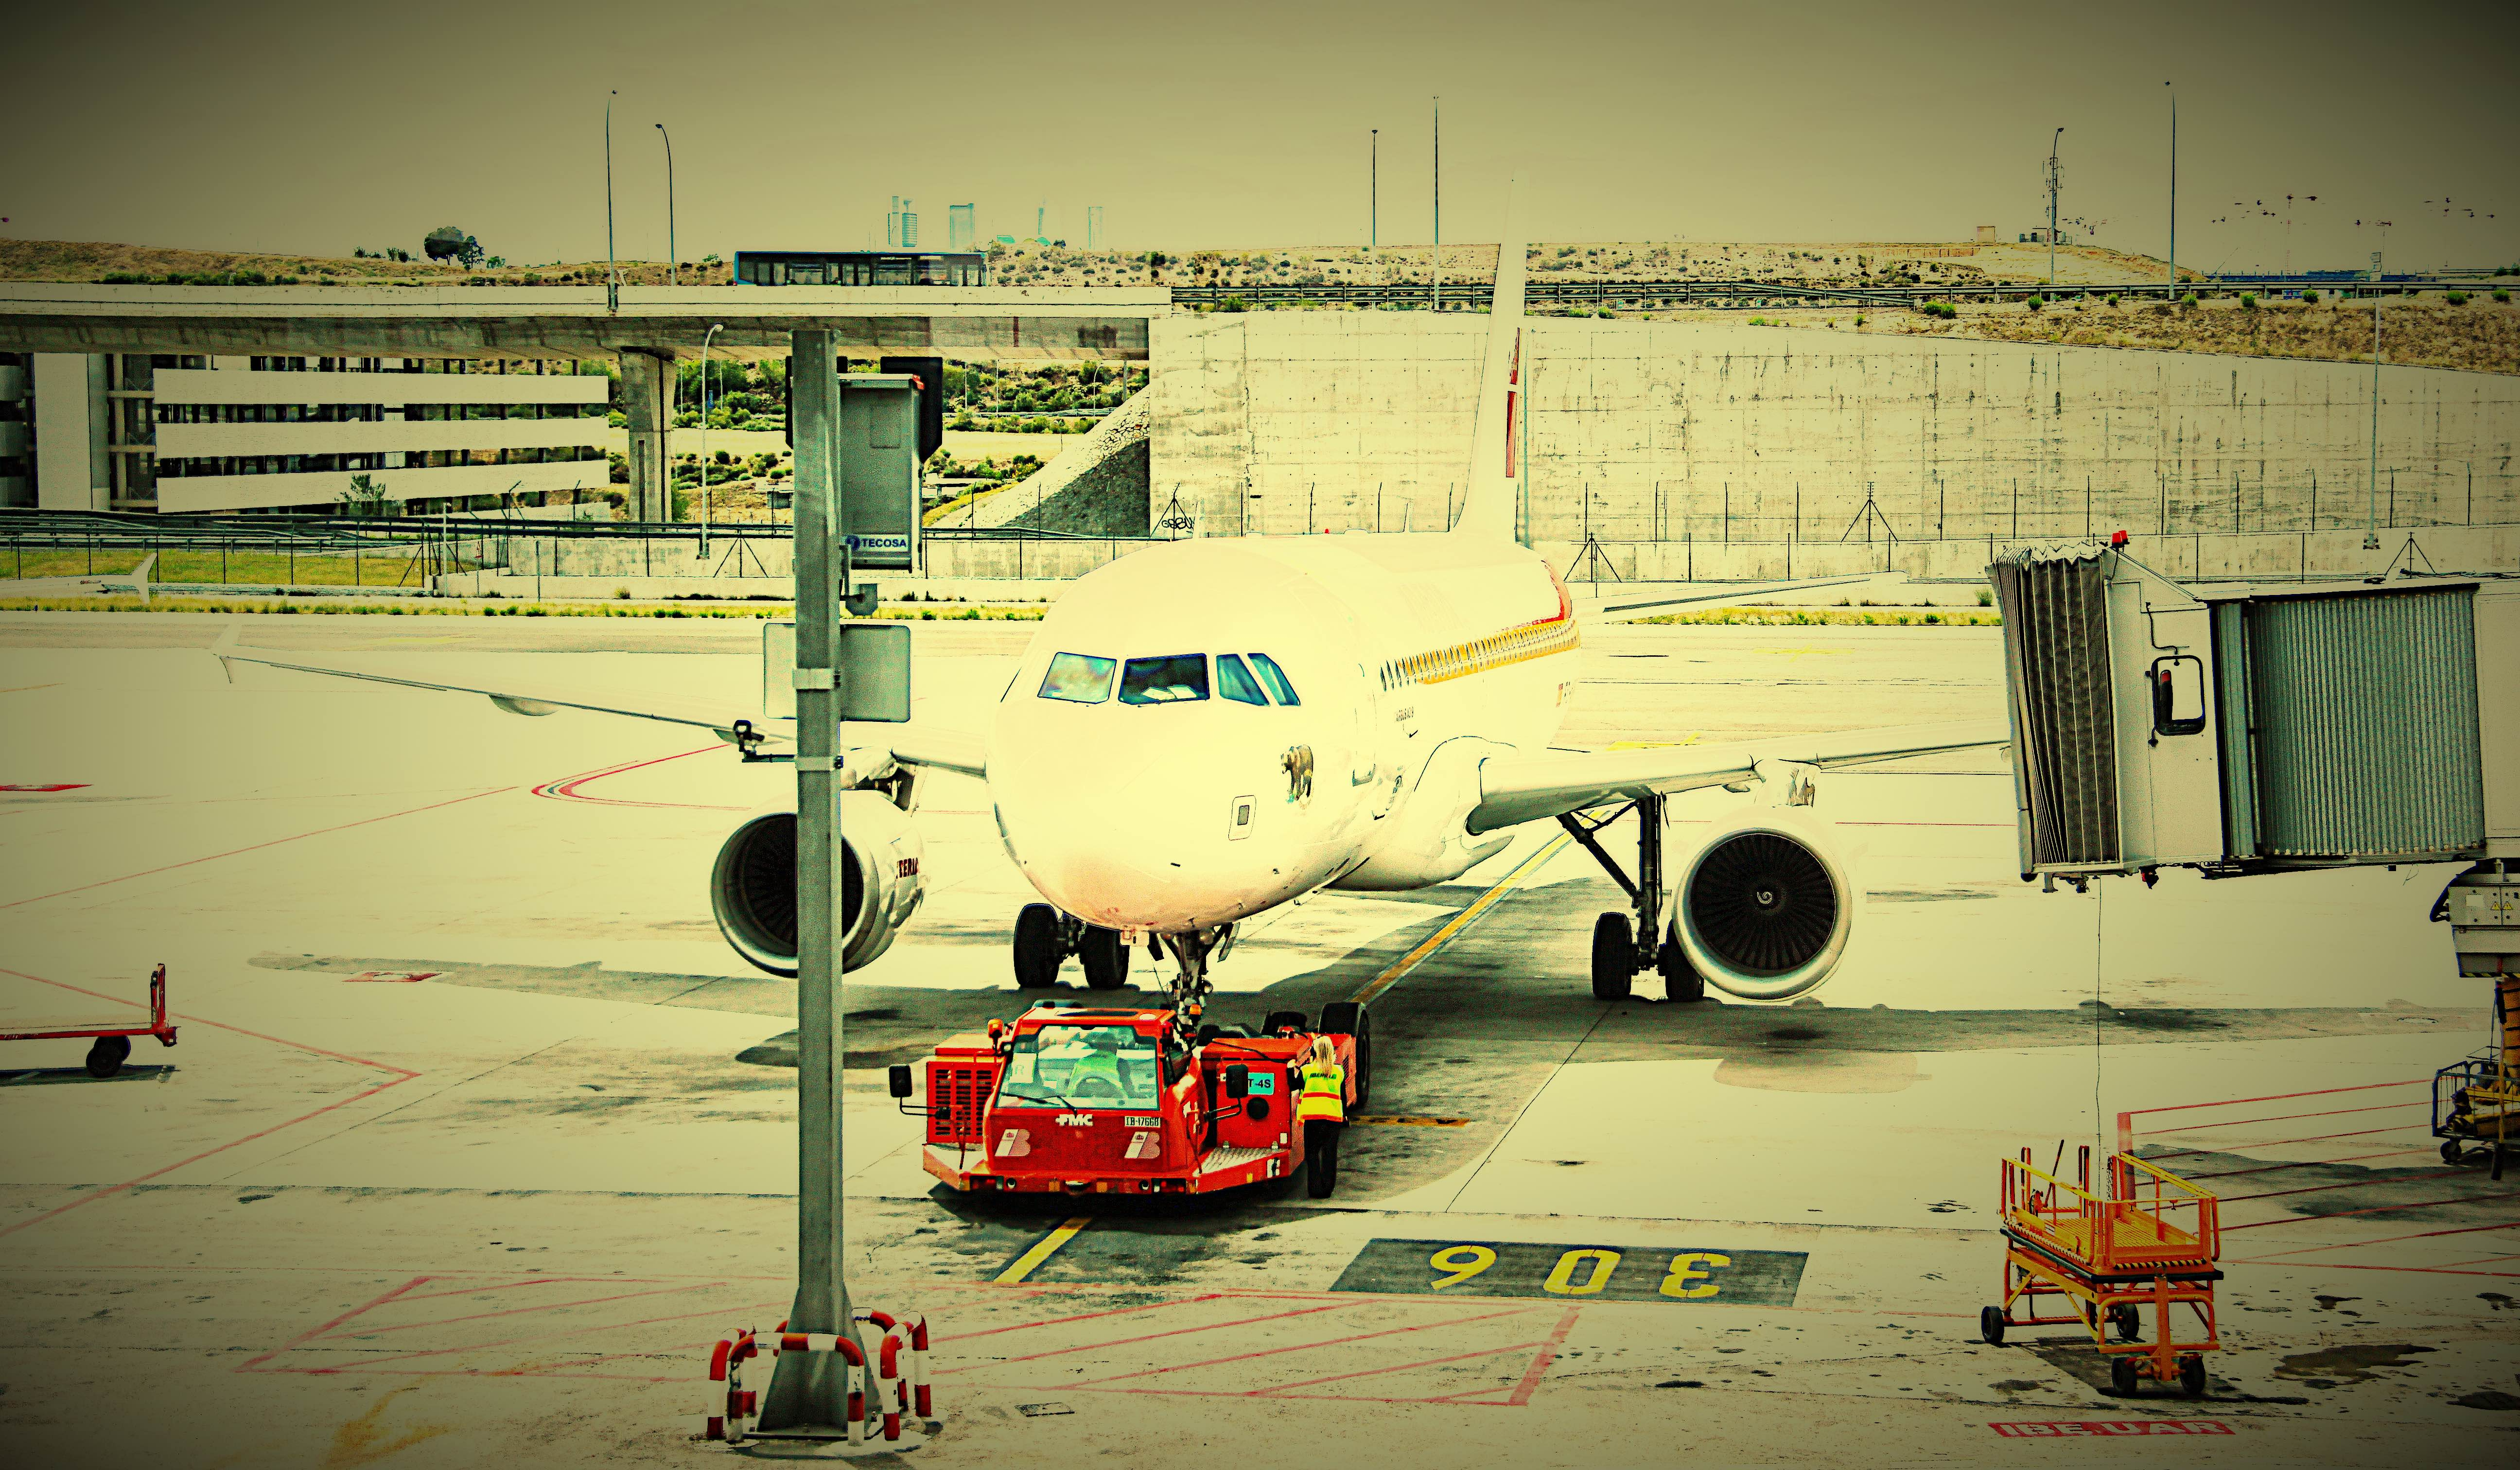 philippine-airplane-direct-flight_Fotor